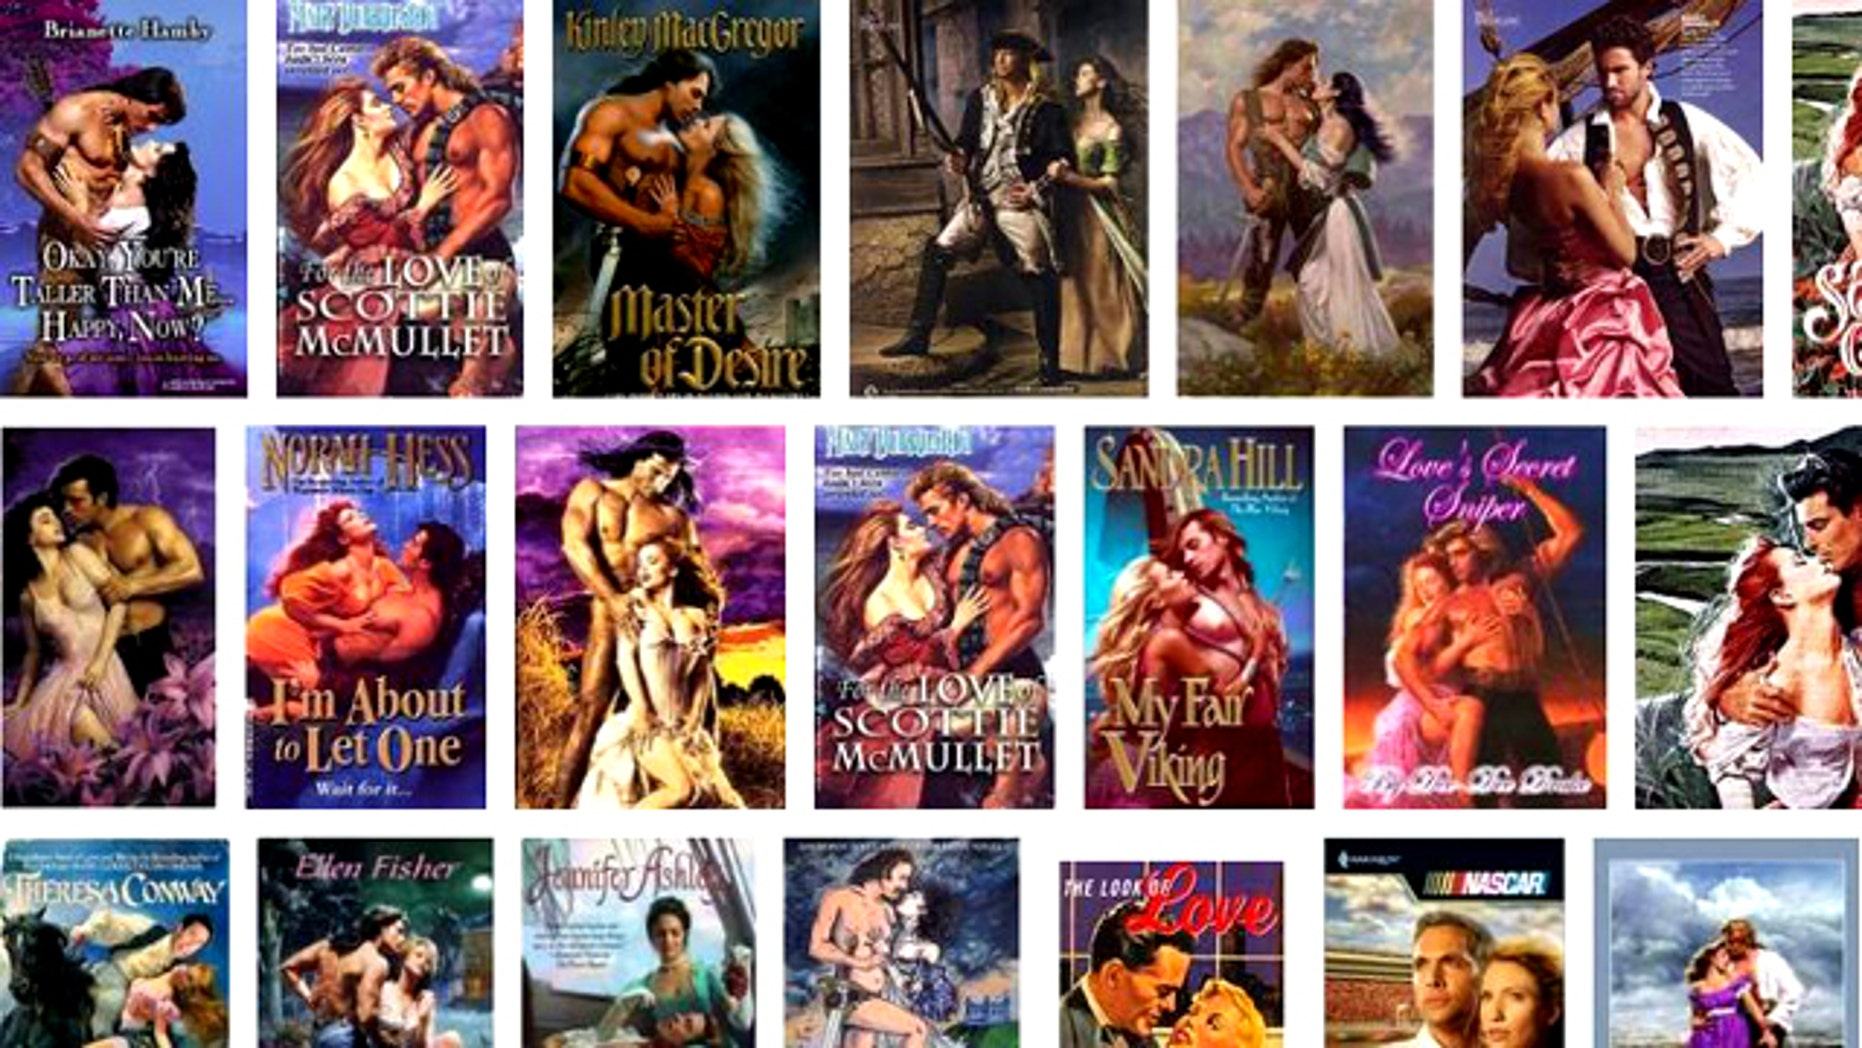 The colorful, graphic covers of romance novels are an instantly identifiable characteristic of the genre, which has proved a dominant force in ebook sales.